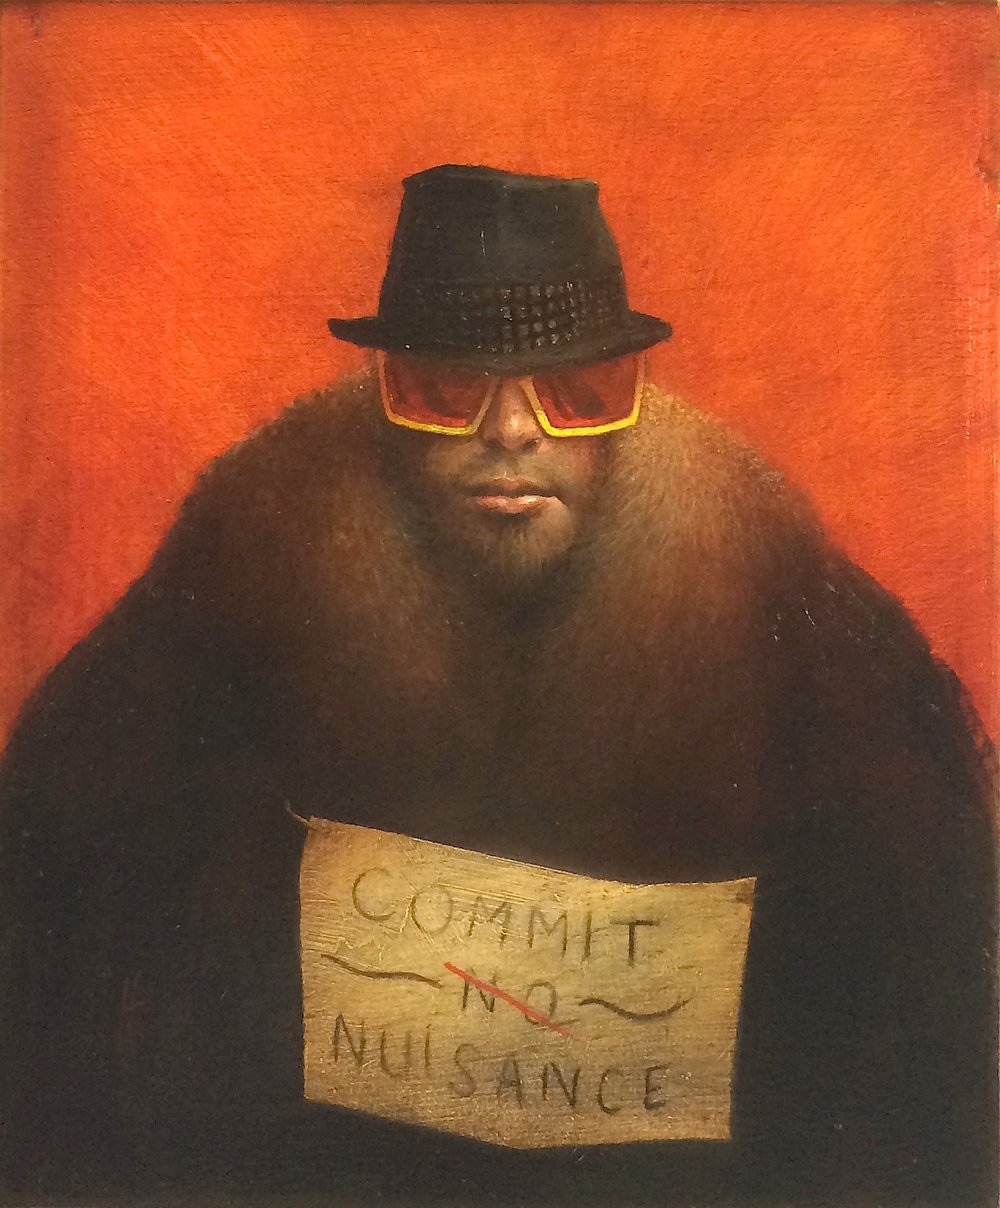 Title: Commit Nuisance  Size: 35.5 x 29.5 cm  Medium: Oil on panel  Price: £2,800